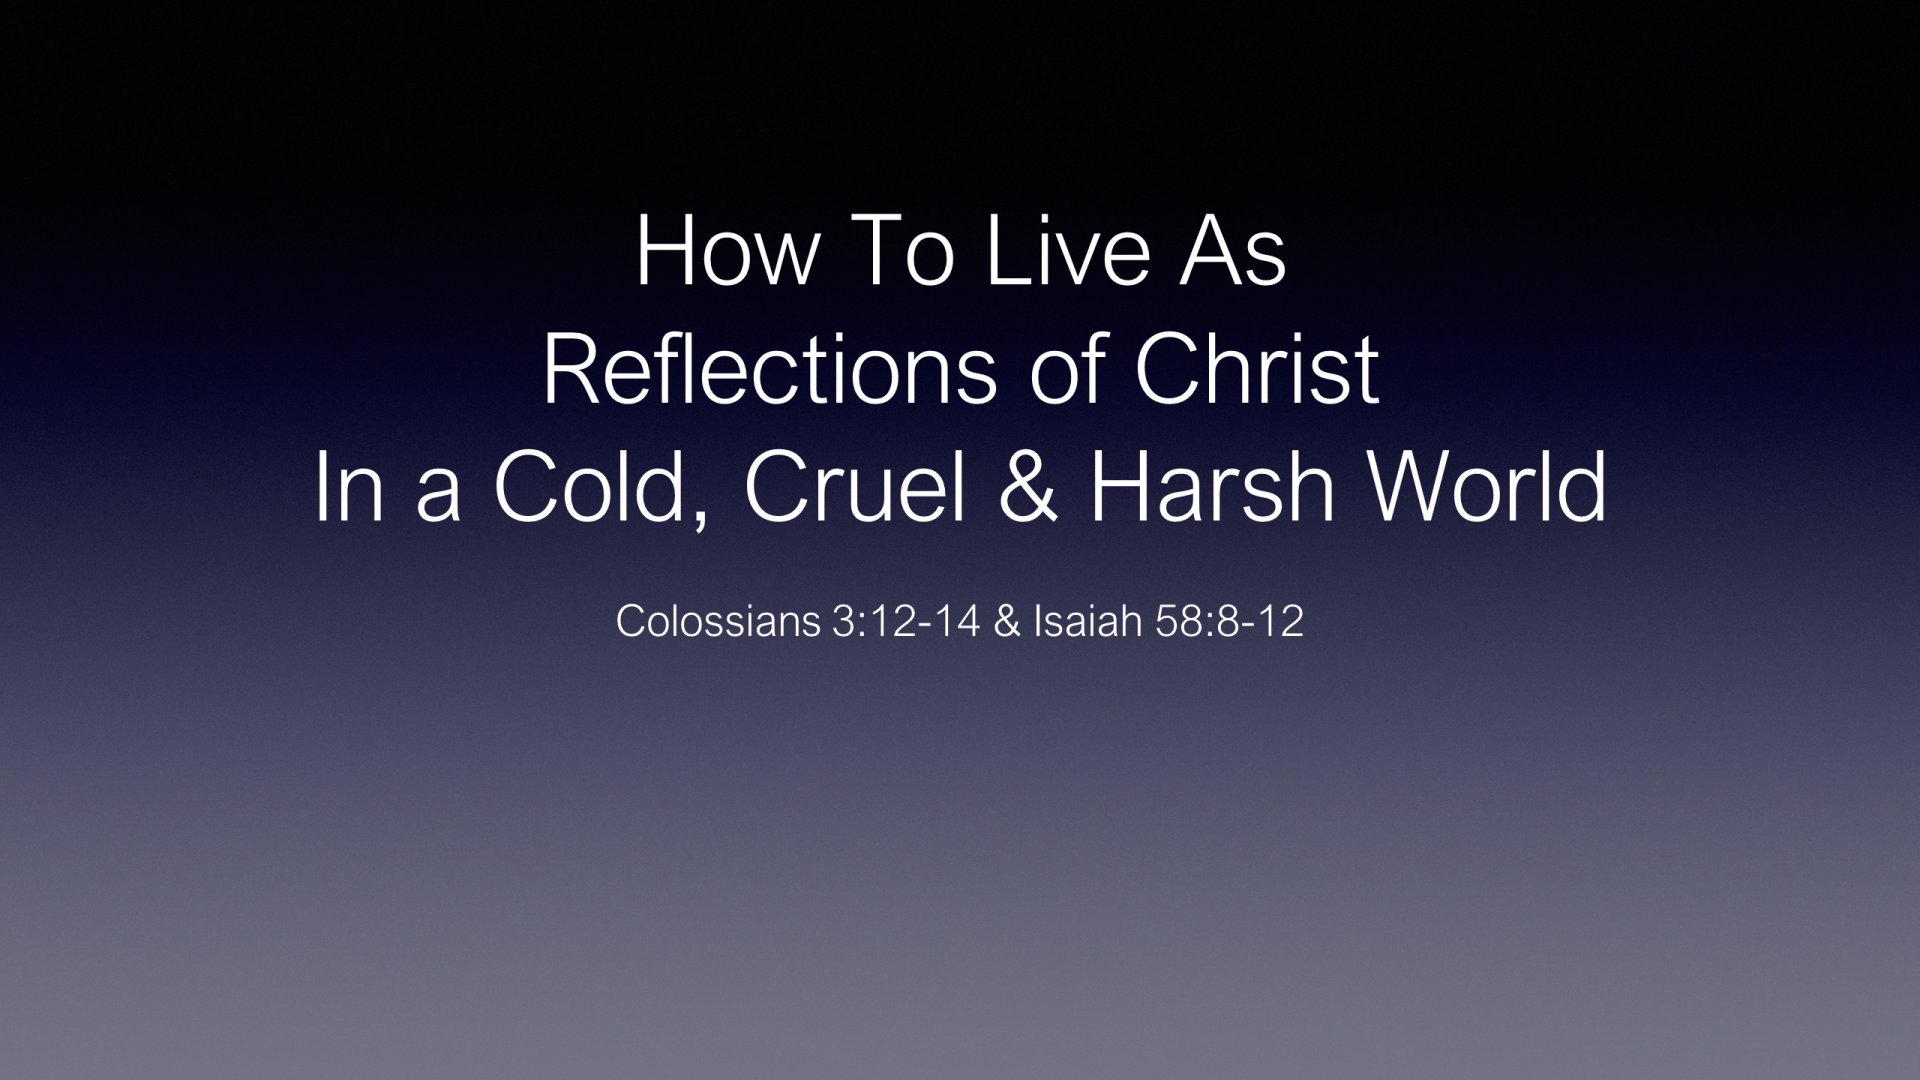 HFG-08 - How To Live As Reflections Of Christ (1)